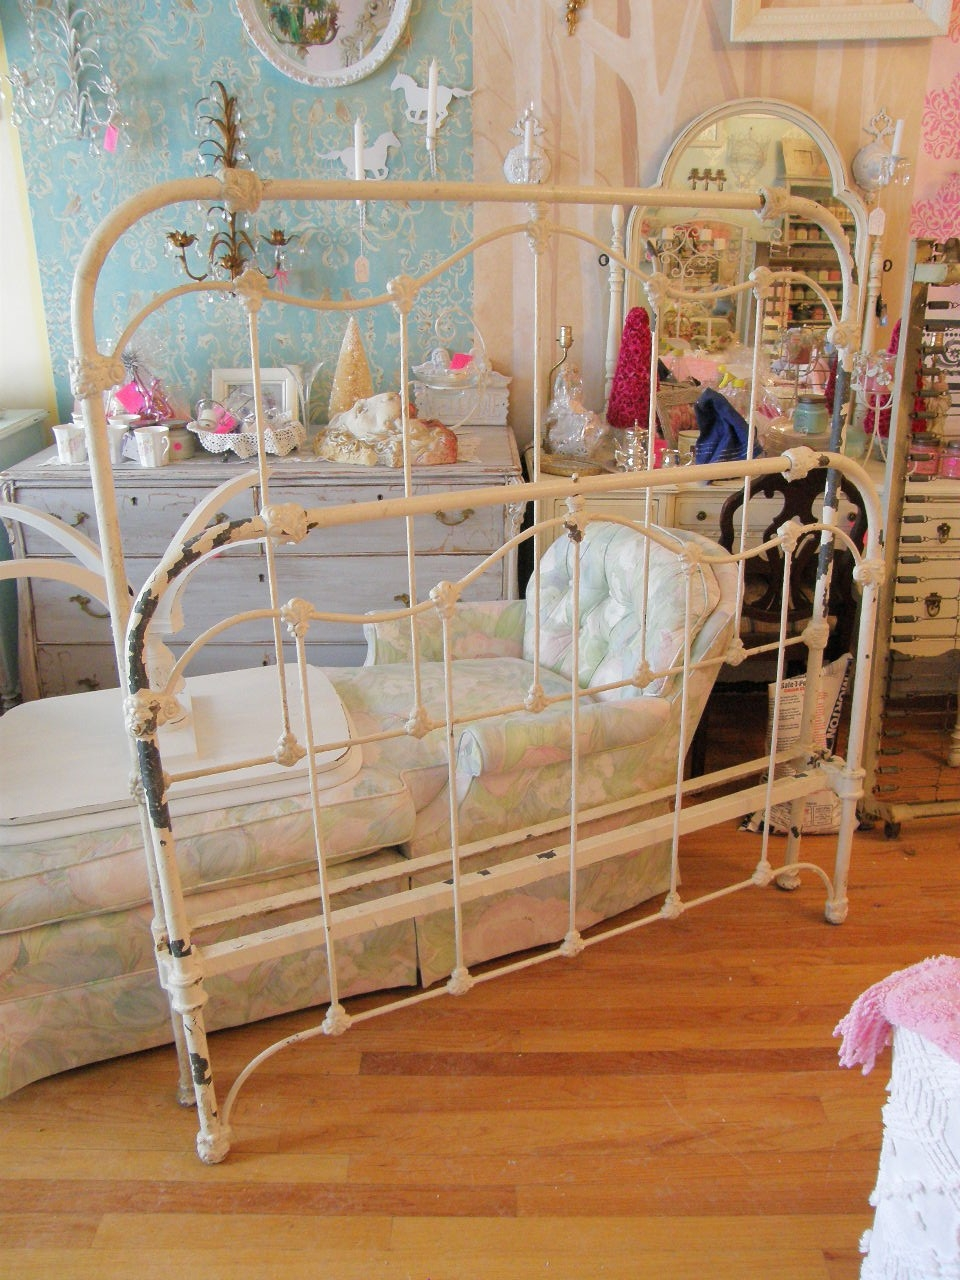 Vintage Iron Bed Frames960 X 1280